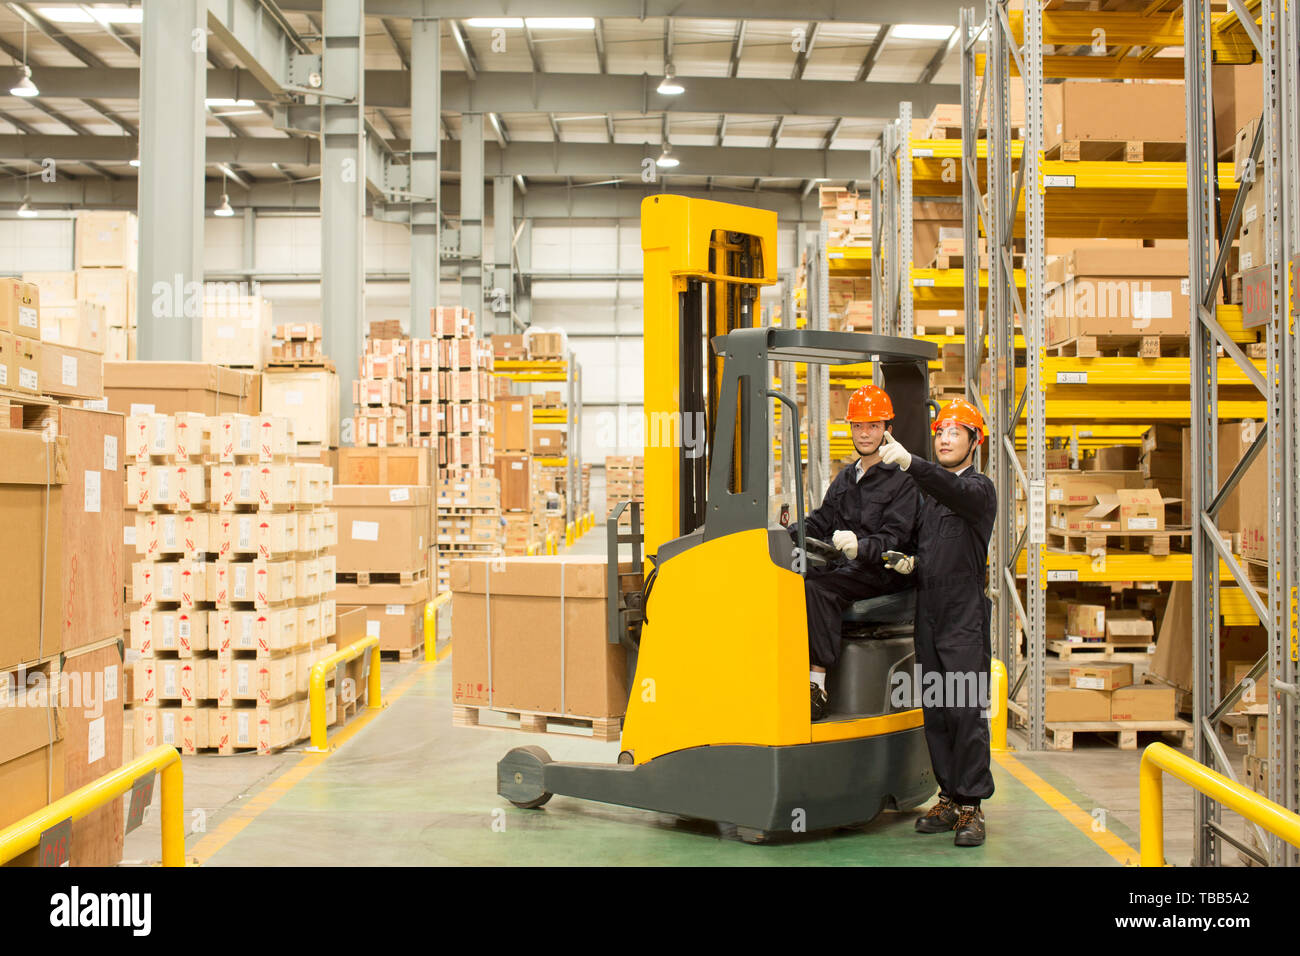 Logistics personnel load and unload cargo at the warehouse Stock Photo